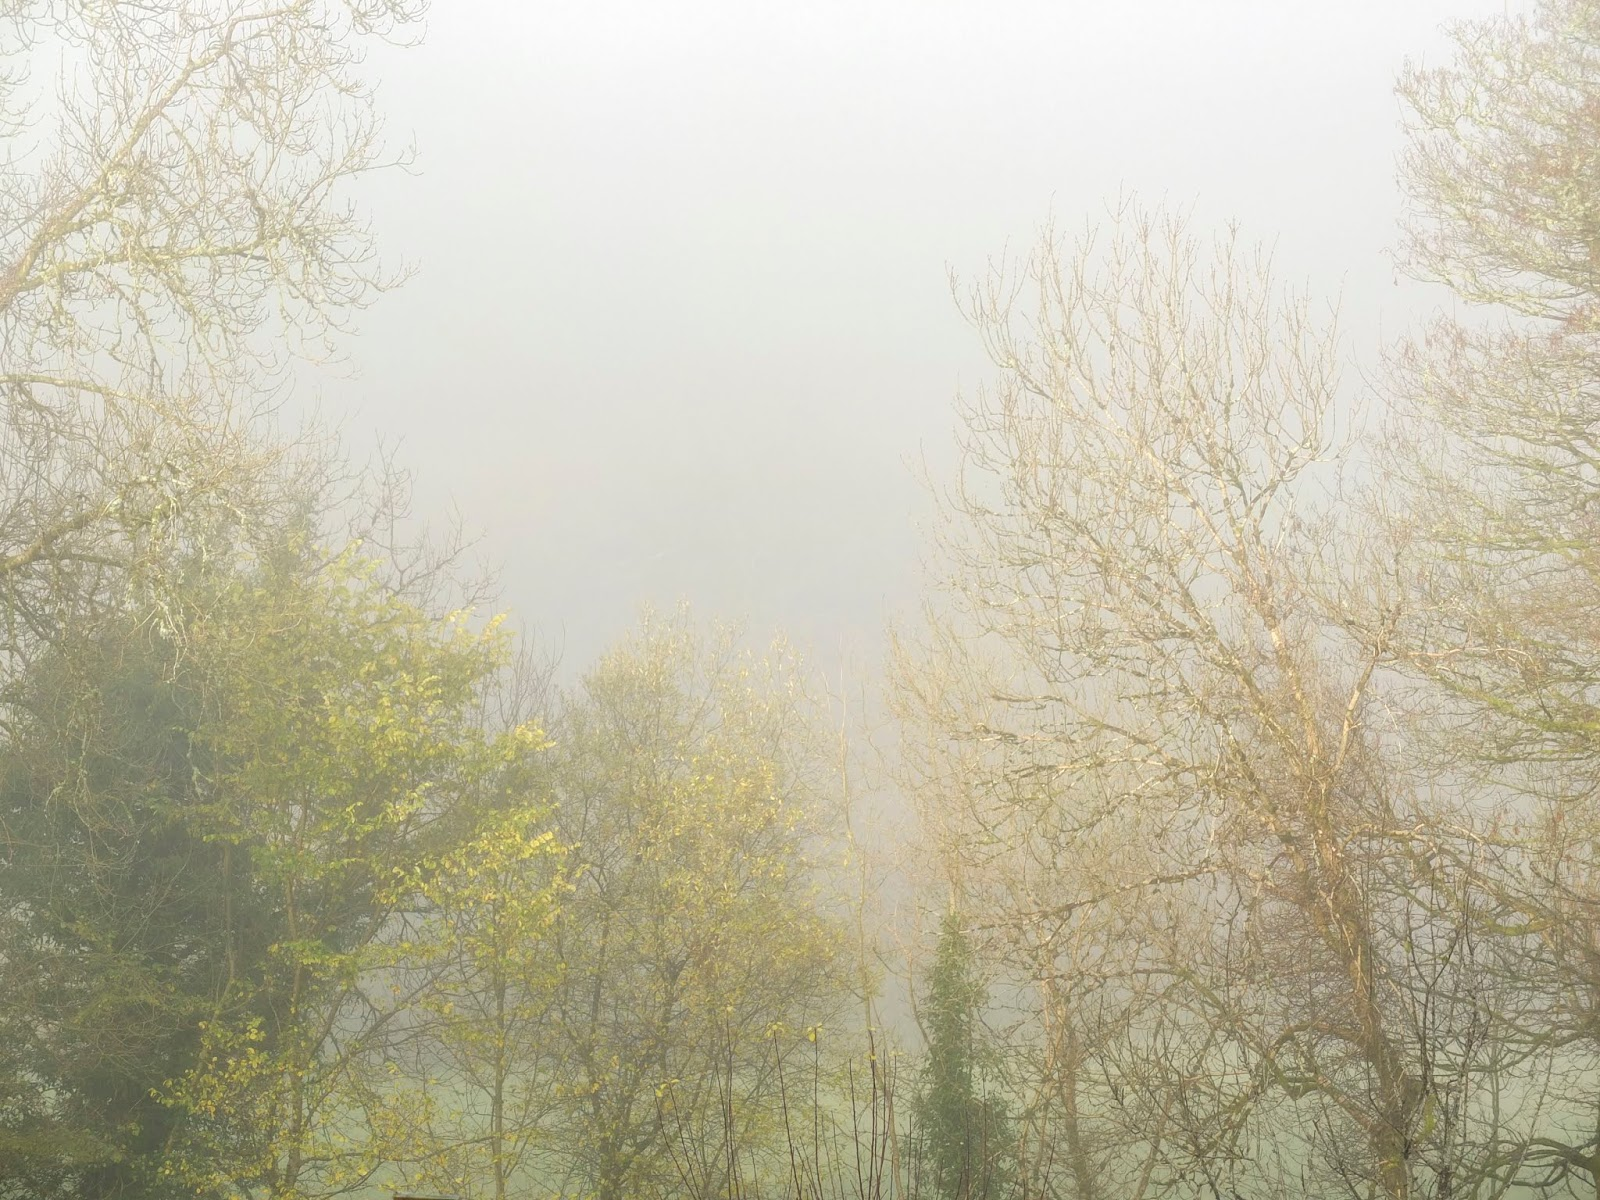 Autumn trees covered in a thick fog and sun trying to burn through.